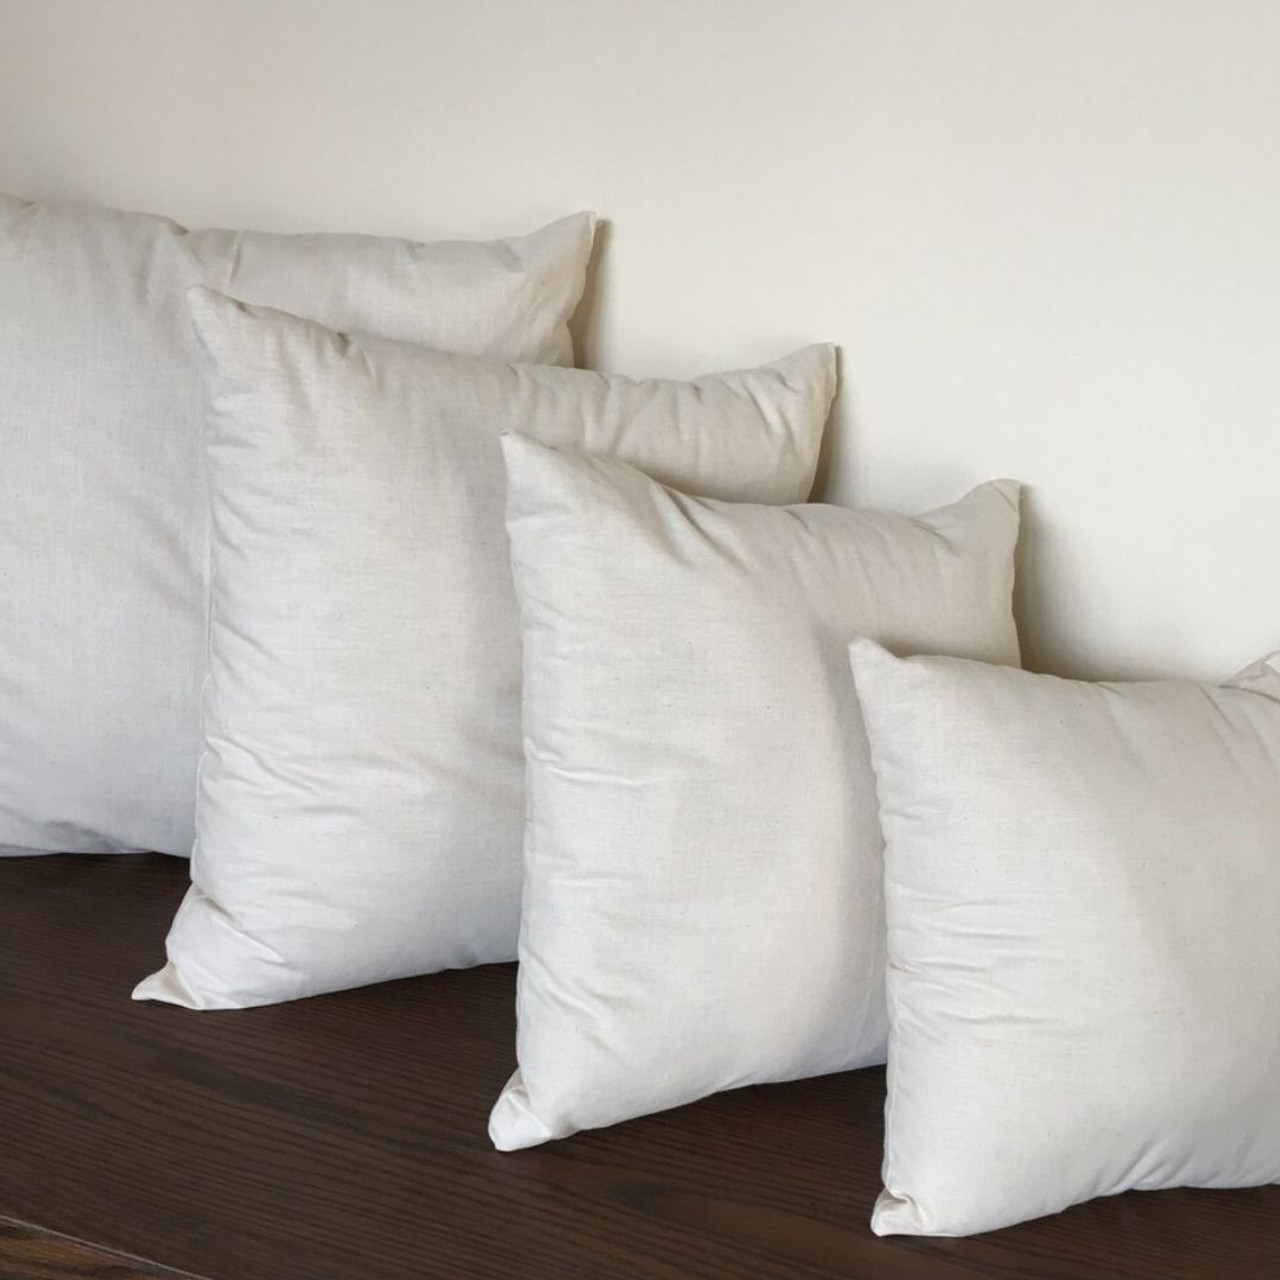 organic cotton filled pillow inserts with organic cotton covers